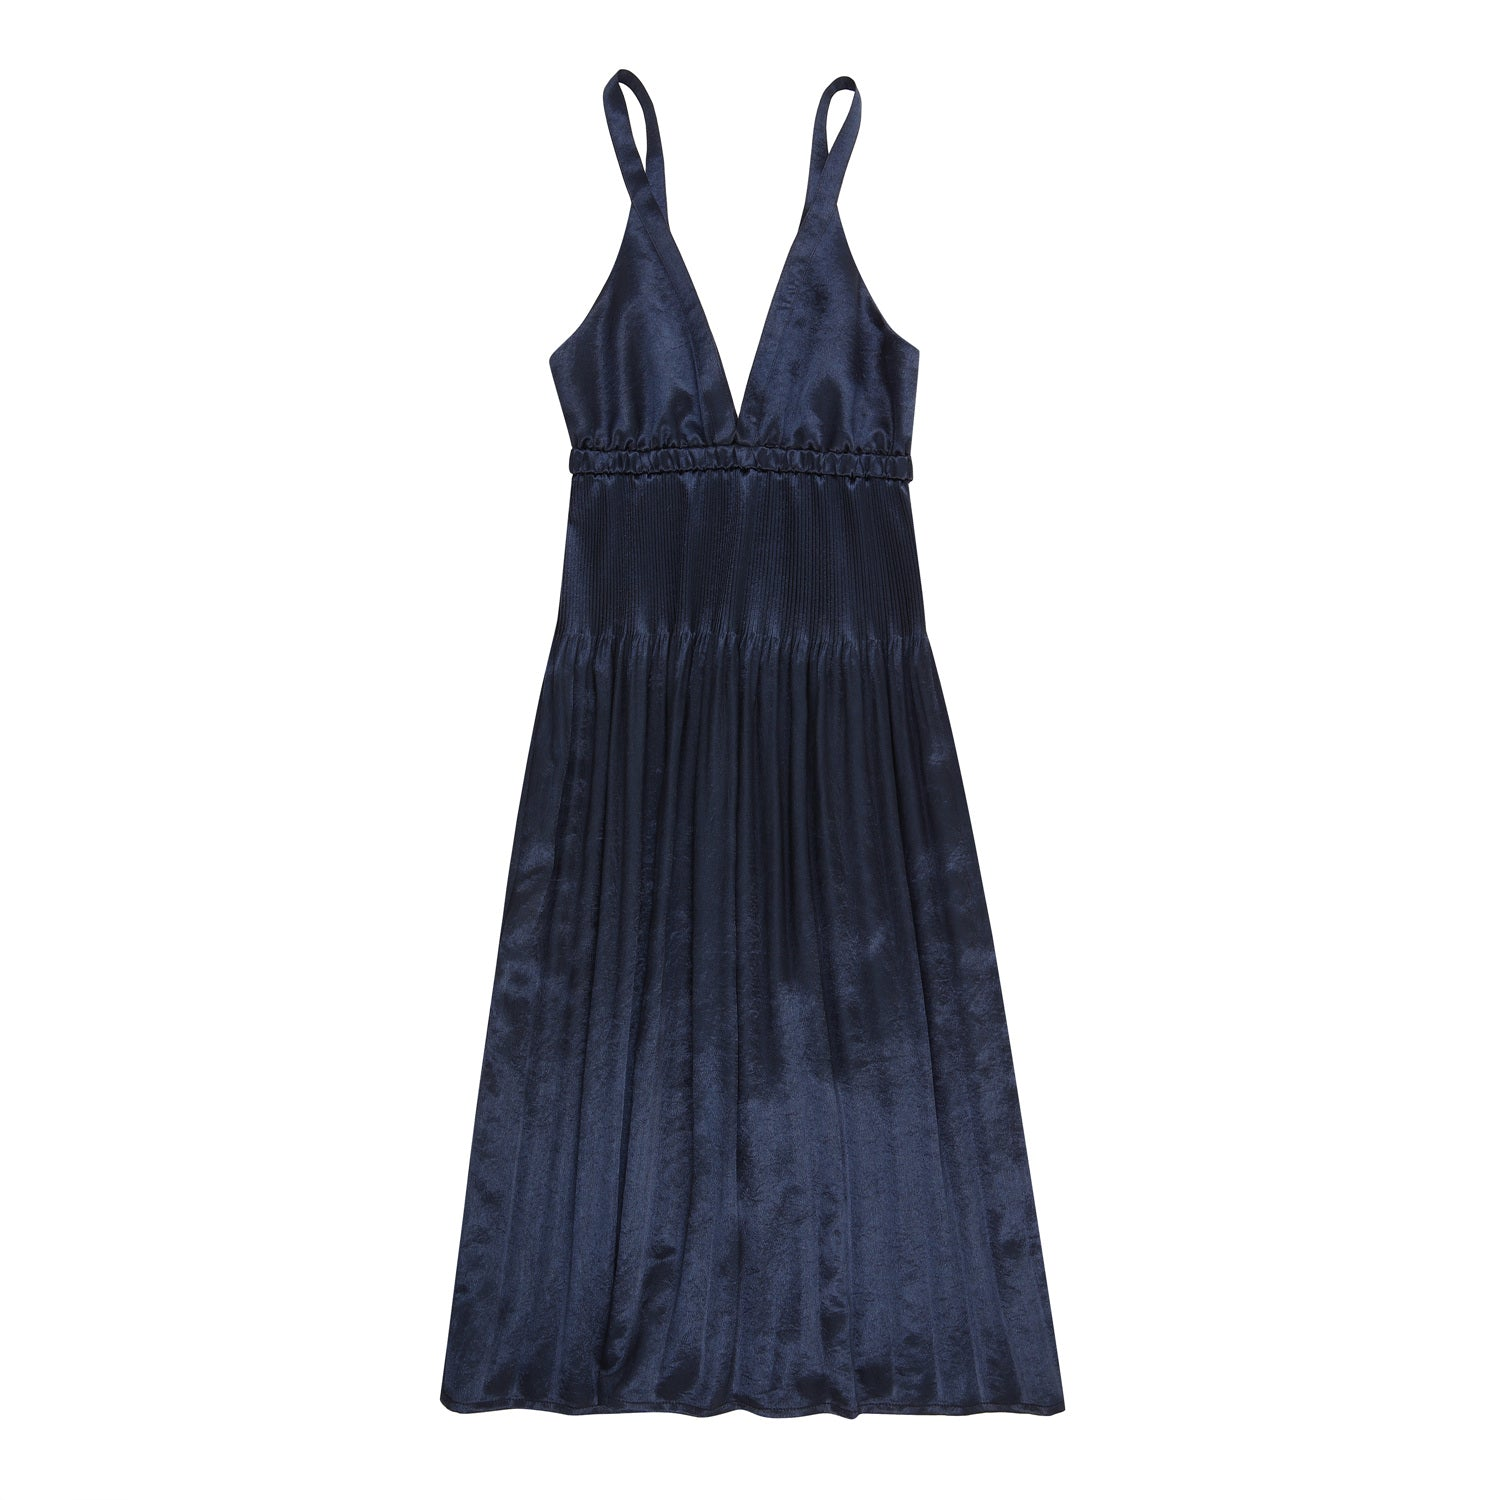 Fortuna shining dress - Navy